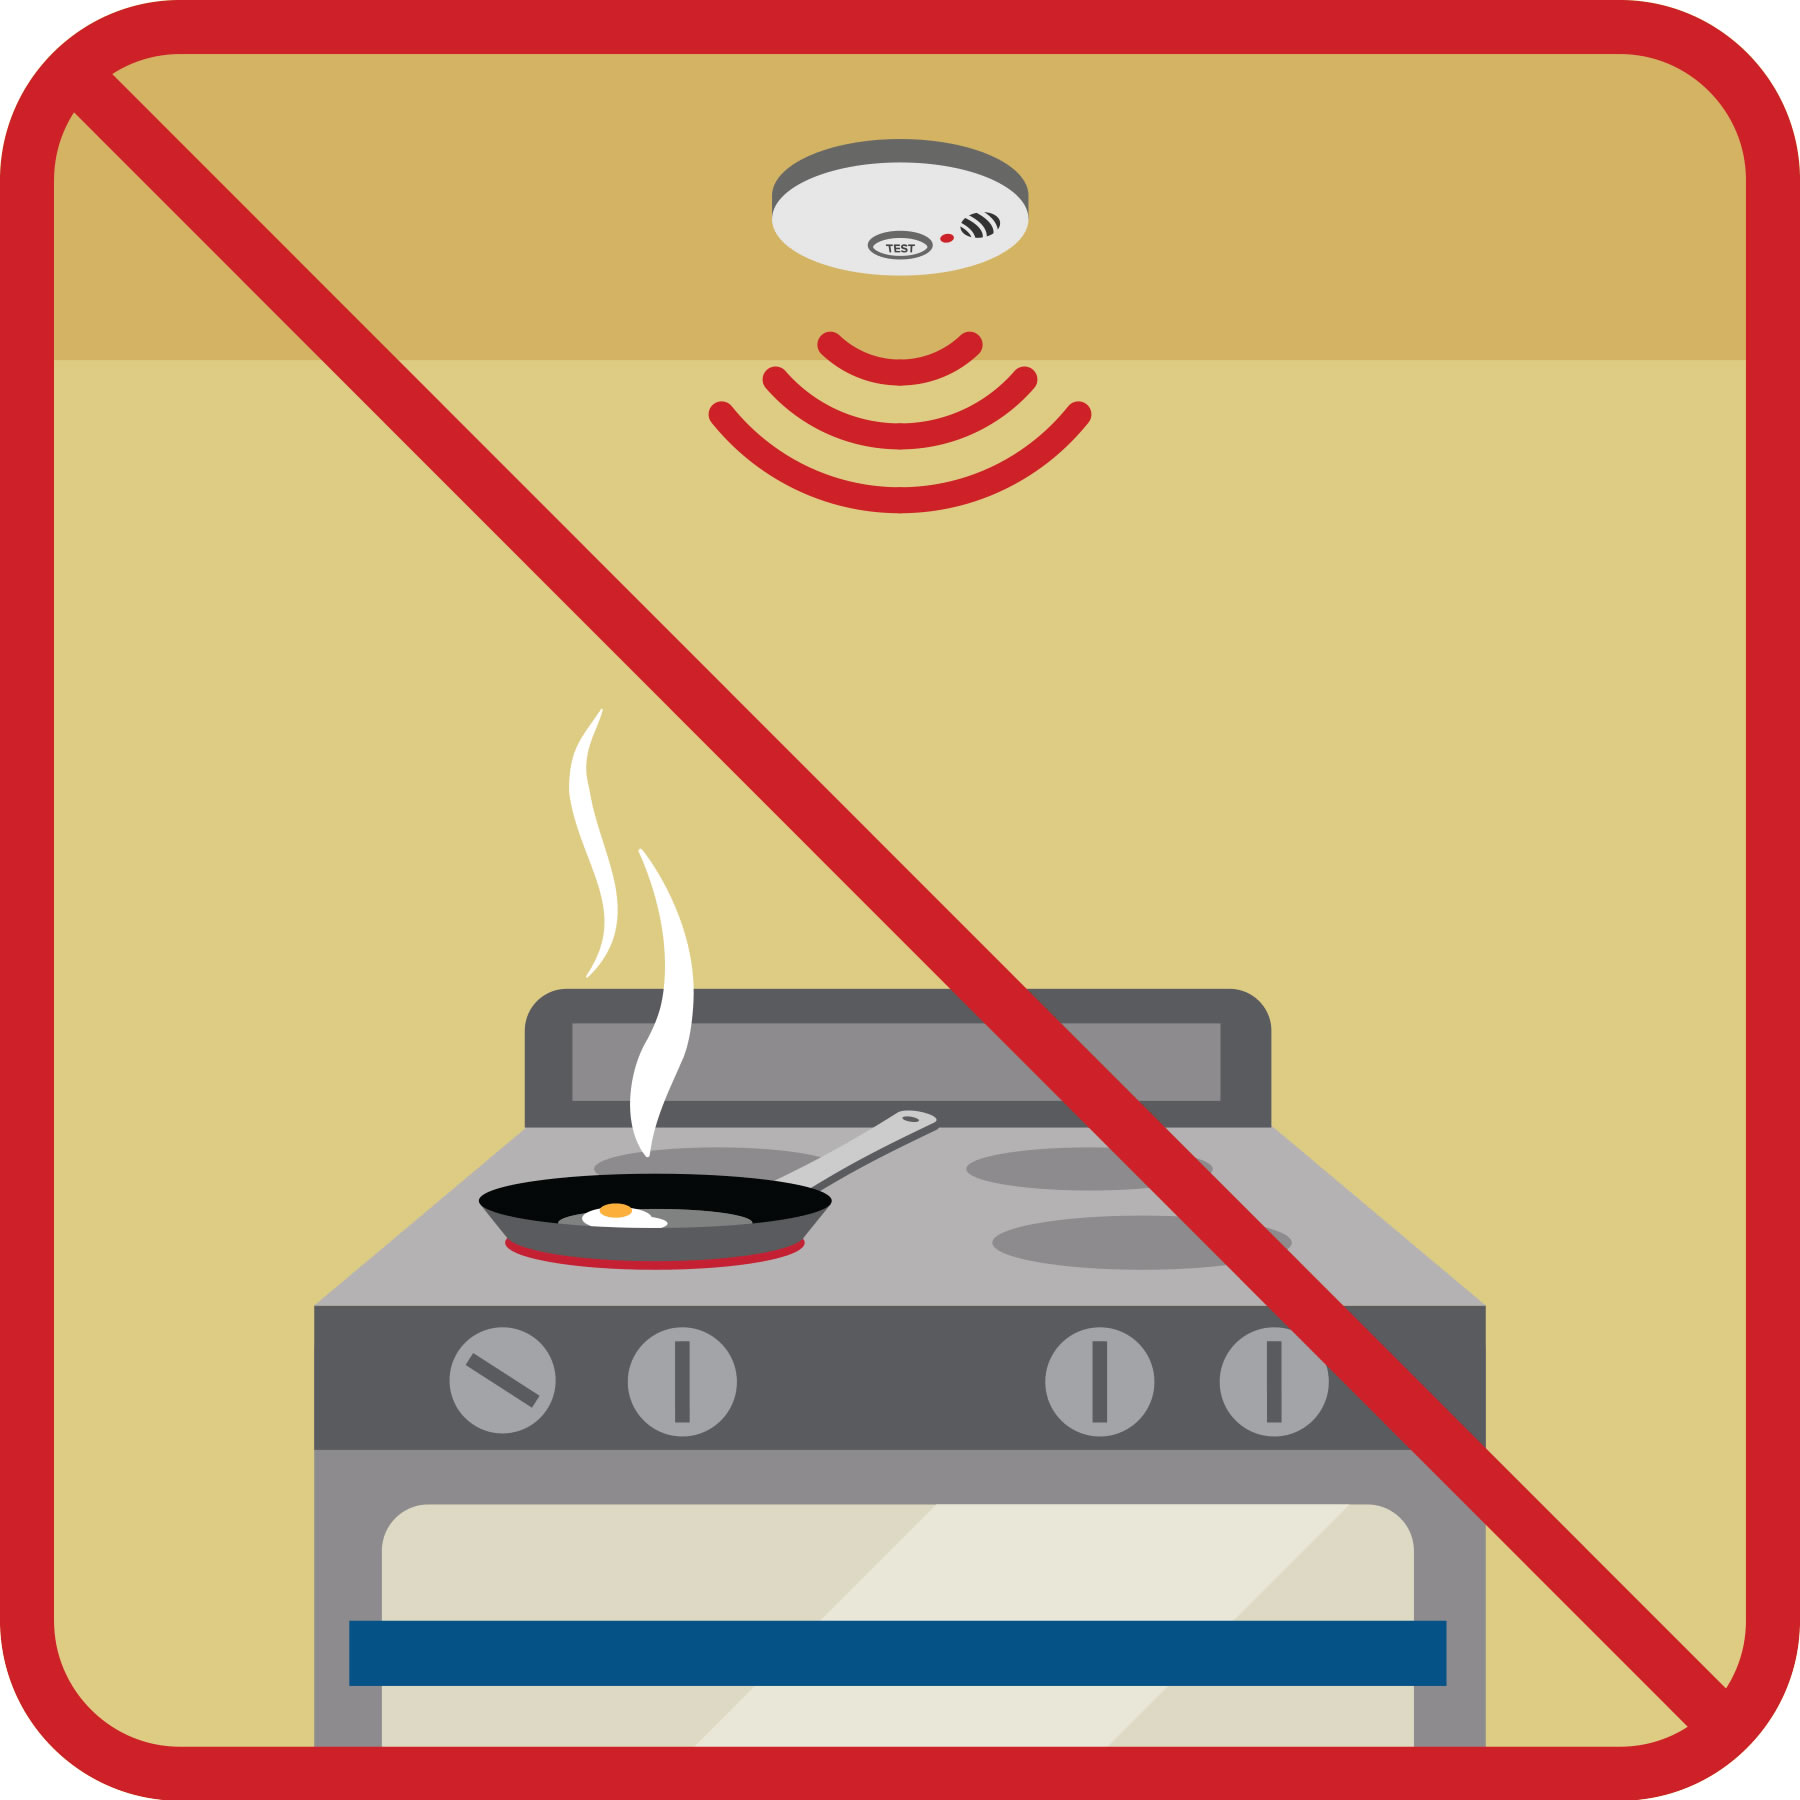 A smoke alarm is located right above a stove top and there is a red line through the image to indicate it was wrong